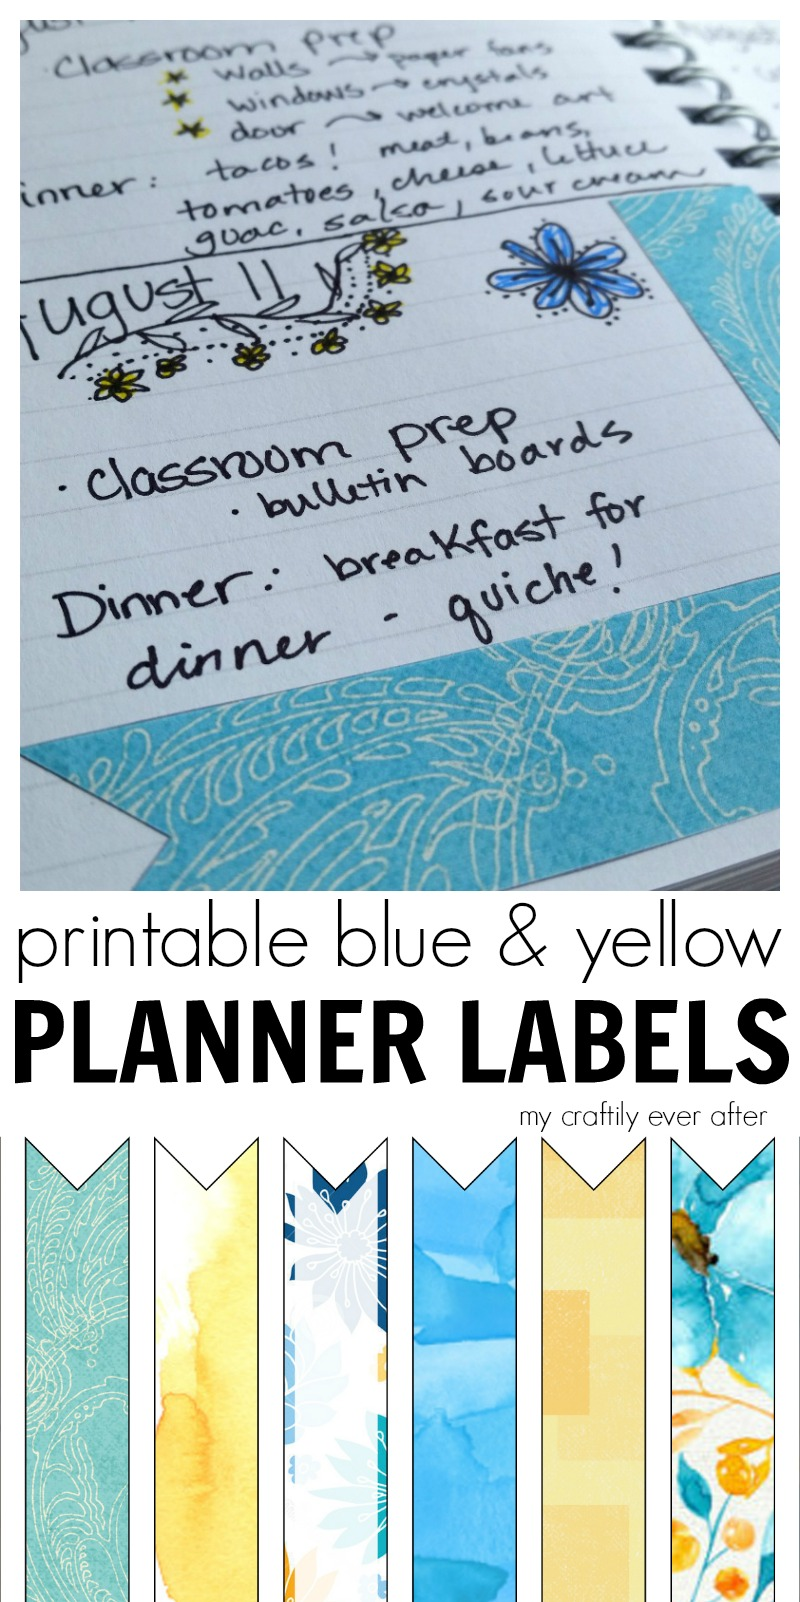 printable blue and yellow planner labels